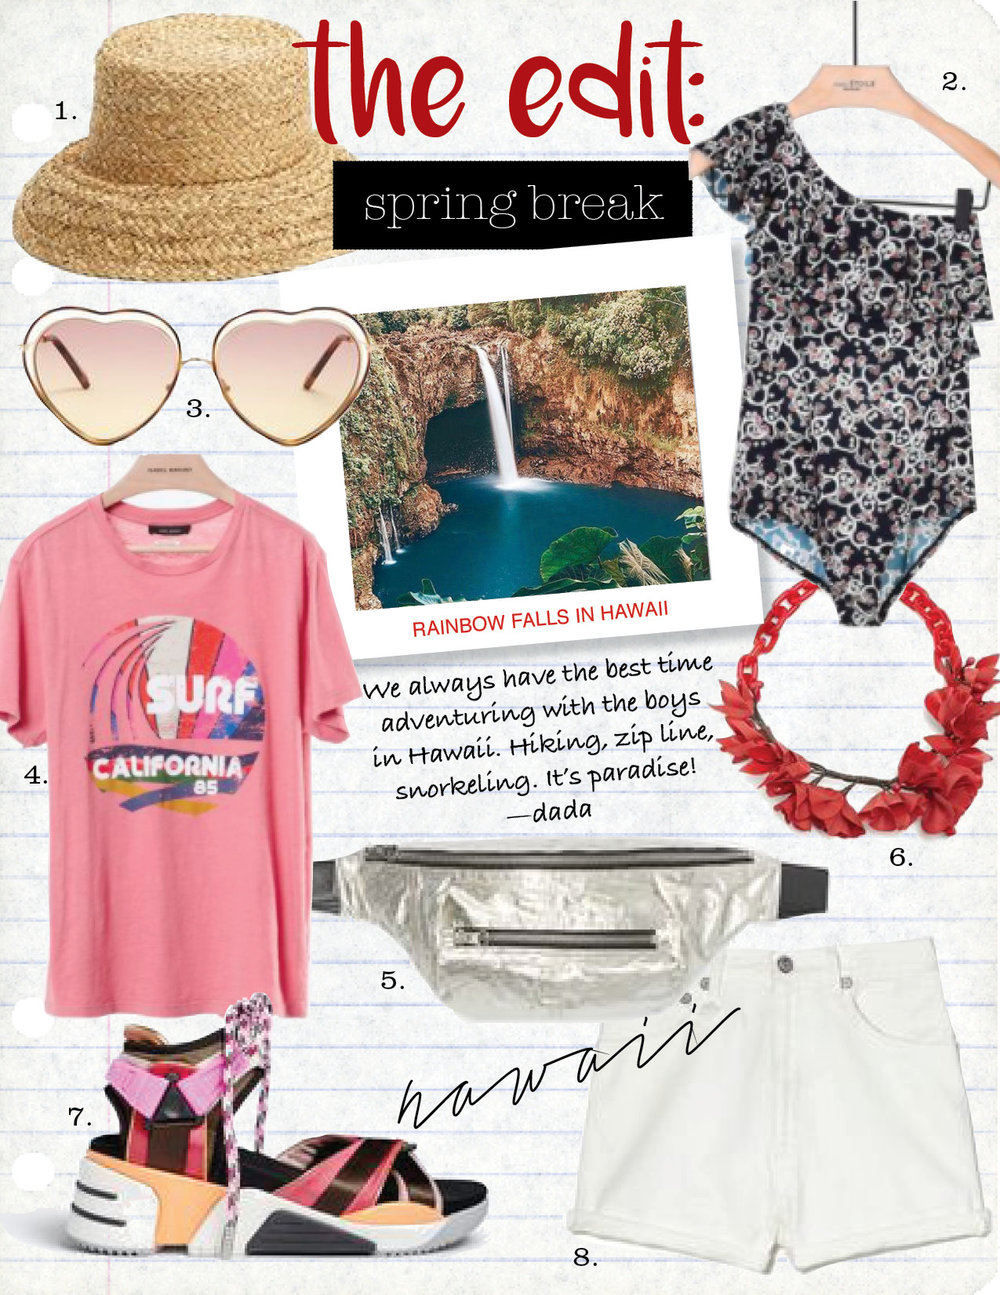 1. janessa leone natural straw sydney bucket hat, $143,  janessaleone.com  2. isabel marant etoile sicilya one piece swimsuit, $235,  isabelmarant.com  3. chloe poppy heart-shaped frame sunglasses, $344,  matchesfashion.com   4. isabel marant zaffer printed tee, $155,  isabelmarant.com  5. isabel marant noomi belt bag, $495,  isabelmarant.com  6. isabel marant honolulu flower necklace, $949,  matchesfashion.com  7. marc jacobs somewhere sport sandal, $275,  marcjacobs.com  8. r13 high-rise hailey shorts, $325,  goop.com